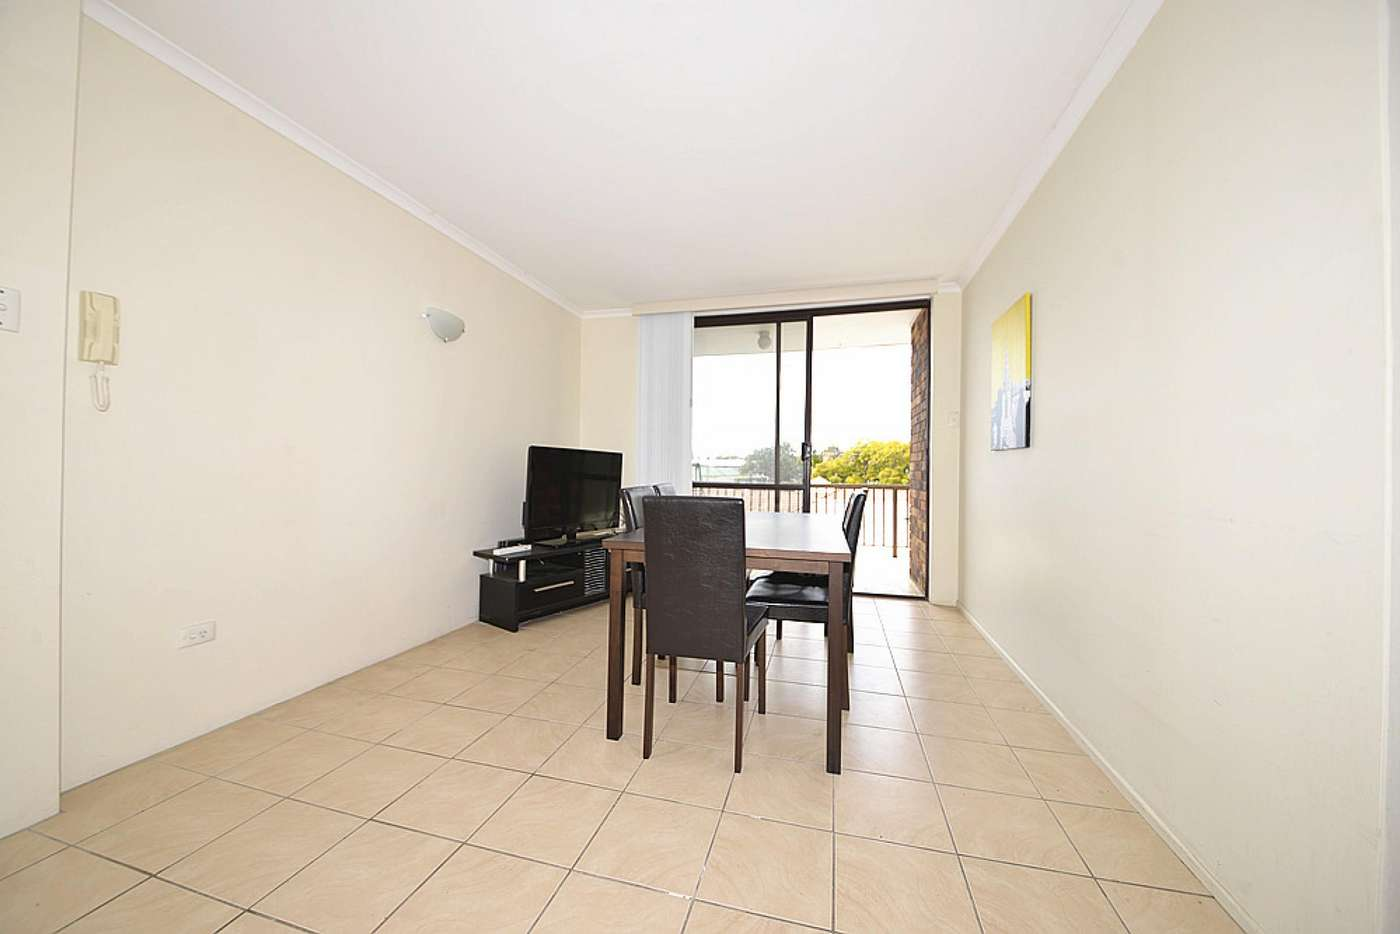 Main view of Homely unit listing, 4/114 Carmody Rd, St Lucia QLD 4067